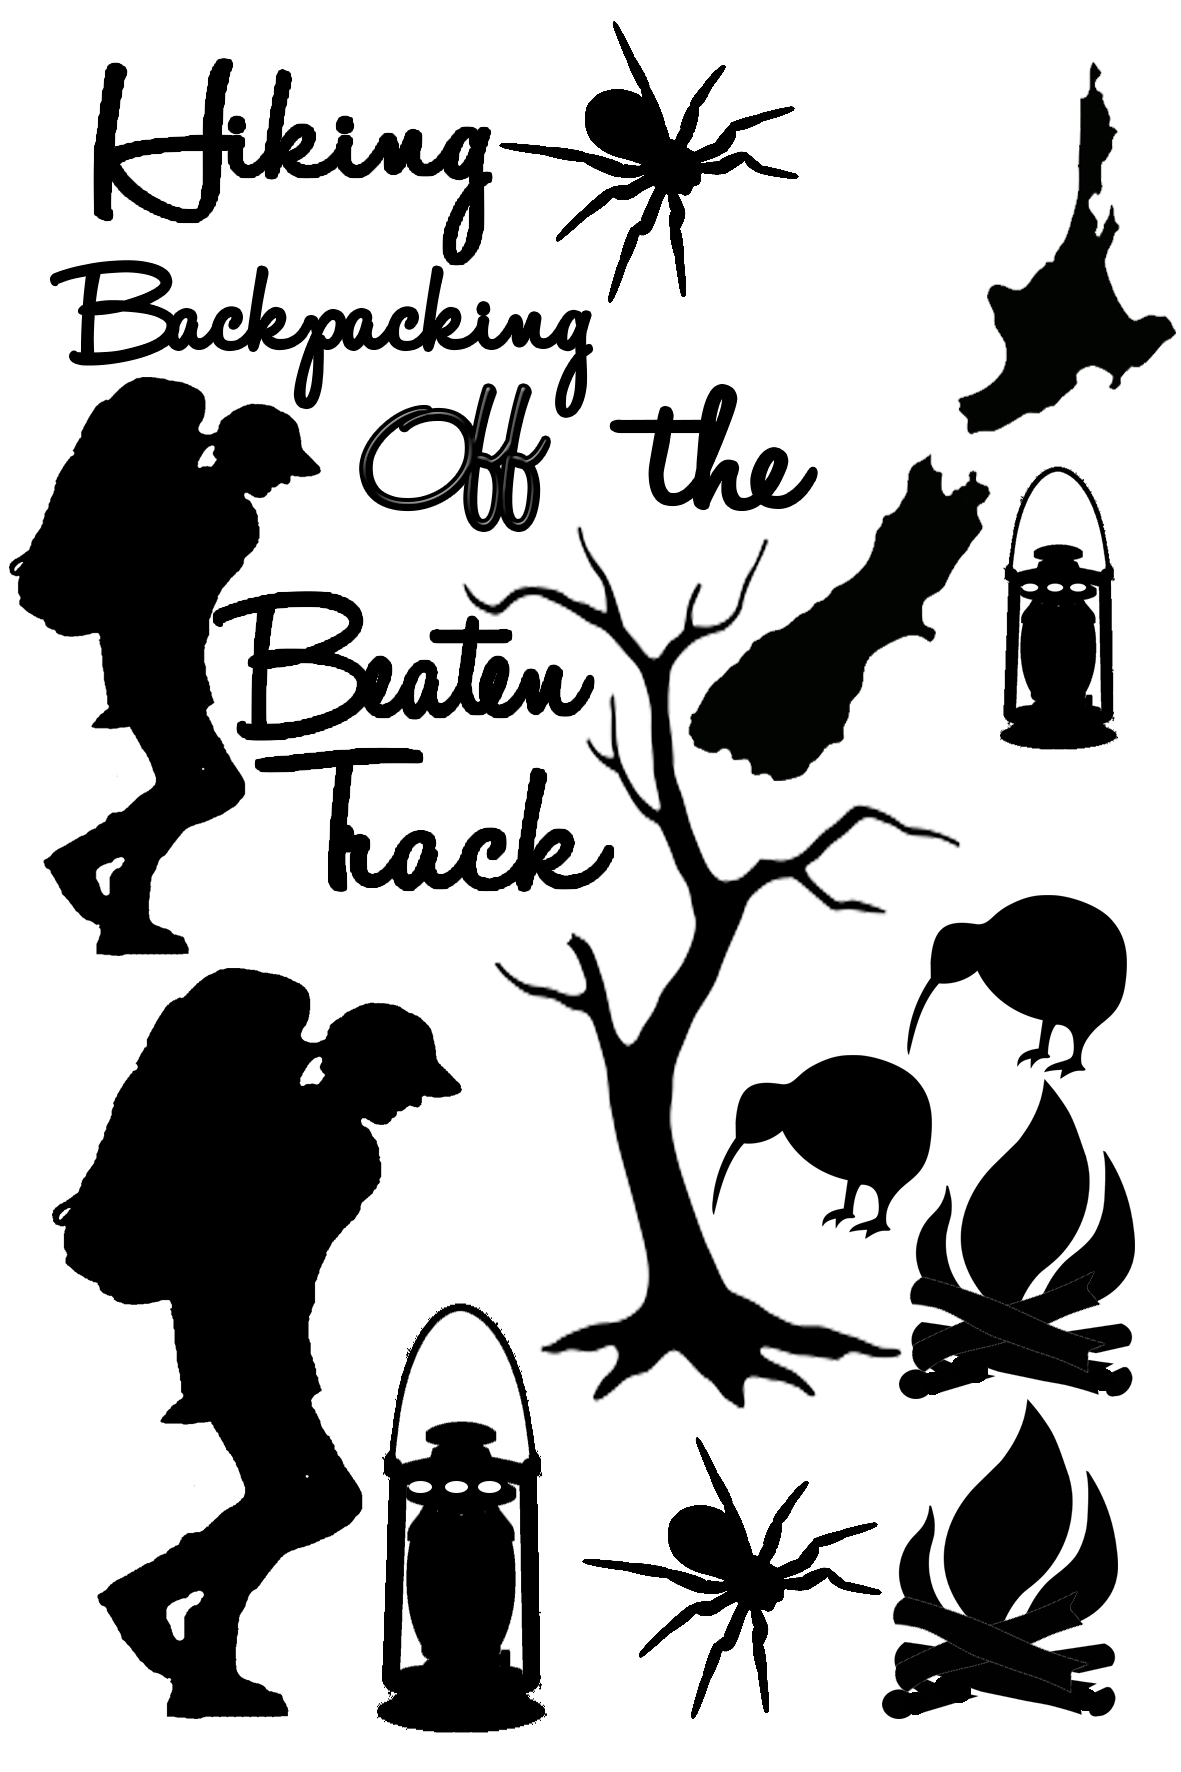 Backpacking Hiking off the beaten trackNew Zealand sold 3\'s